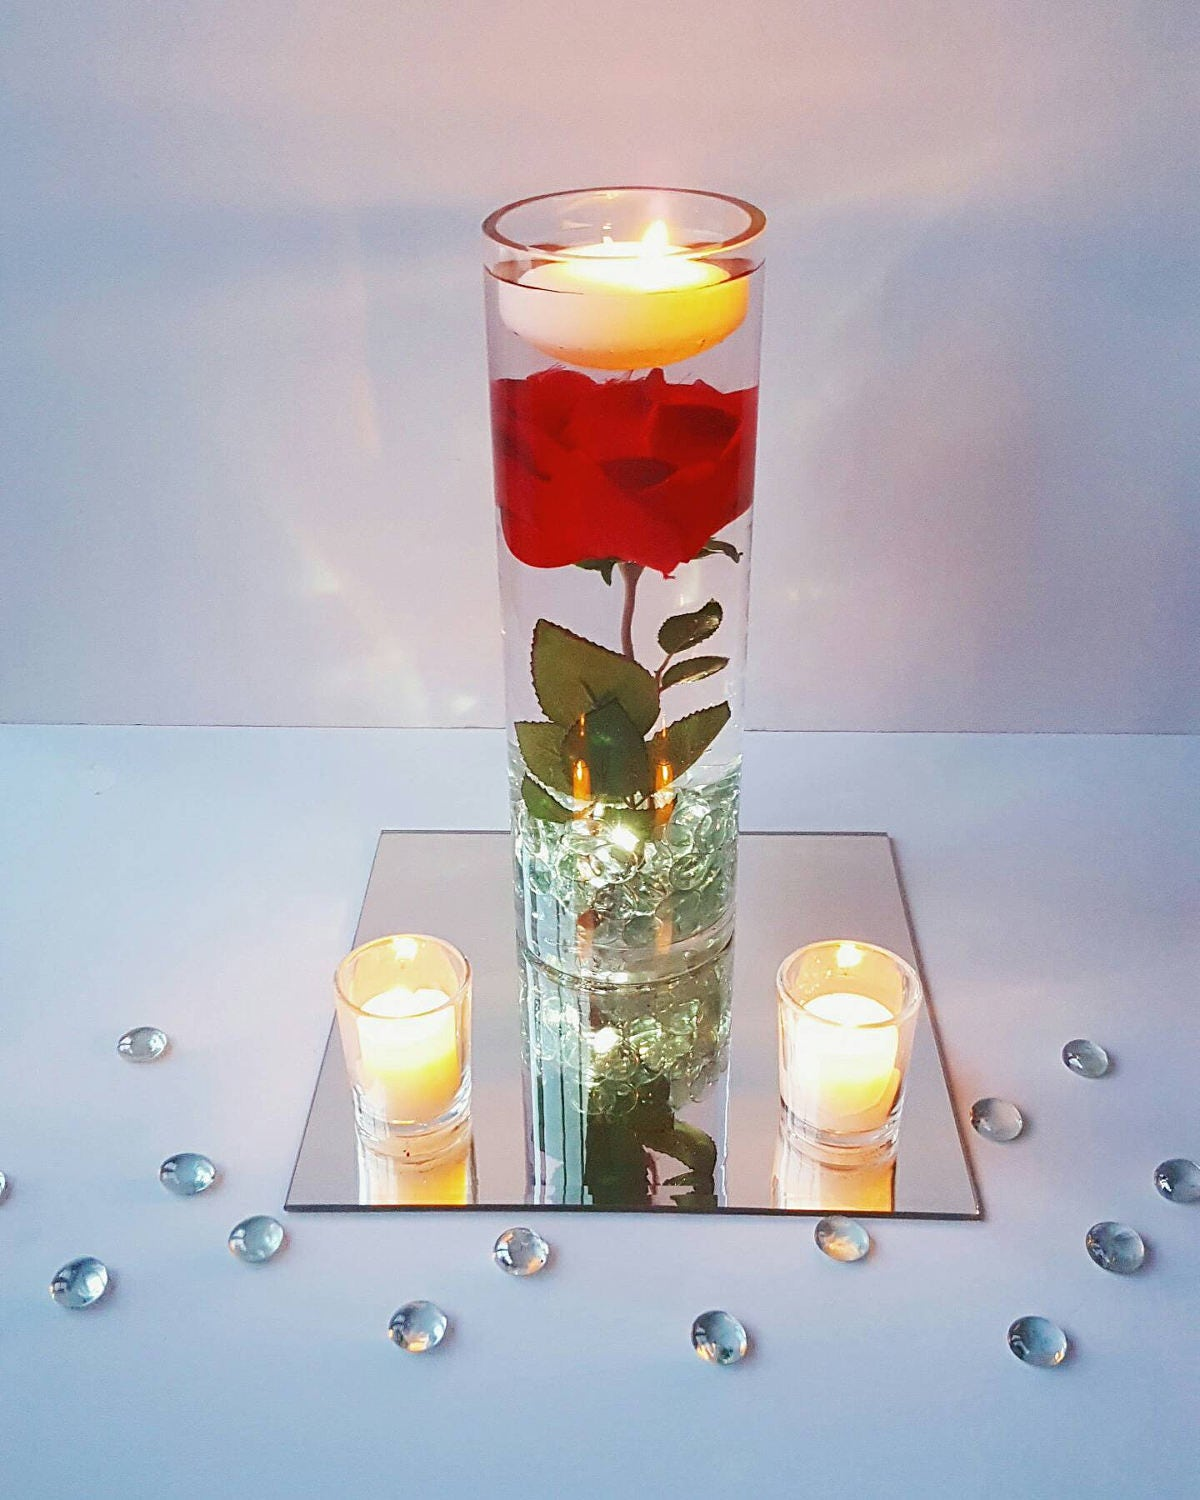 Floating Candles Centerpieces Ideas For Weddings: Floating Candle Centerpiece Rose Centerpiece Beauty And The